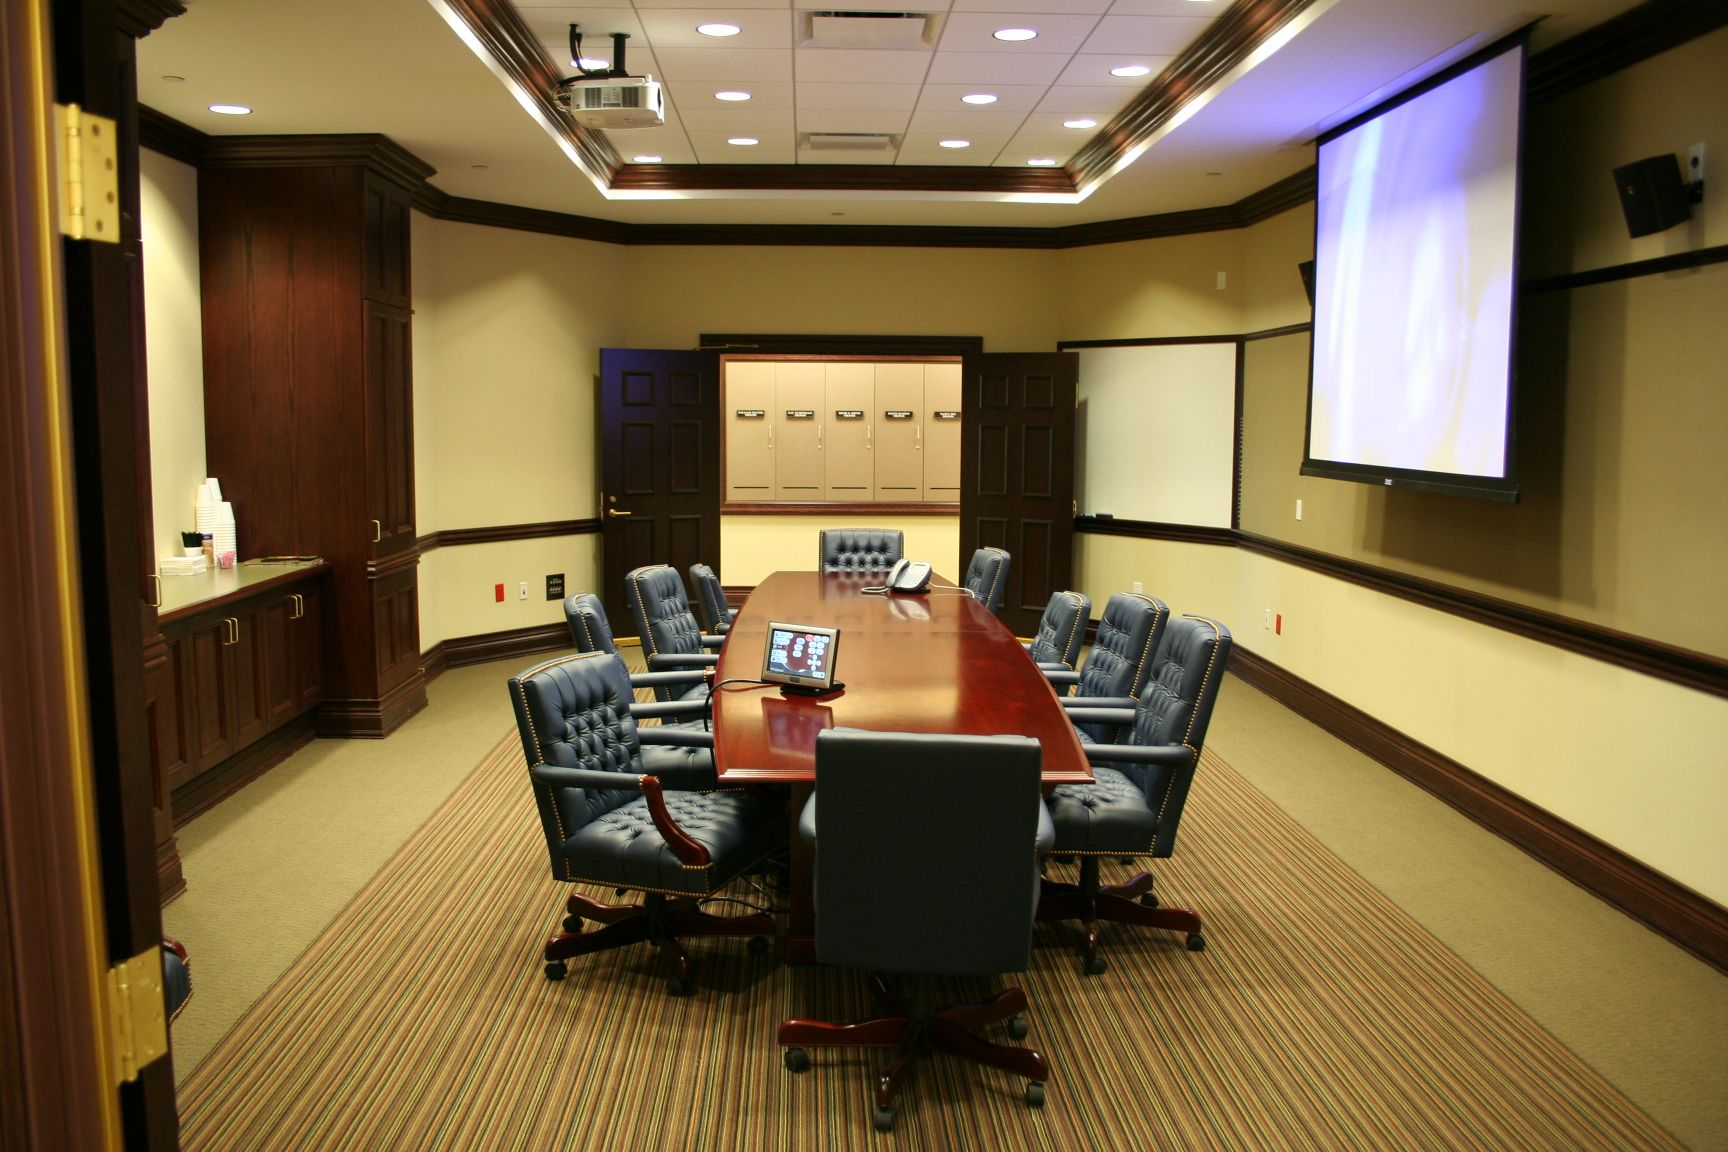 Office conference room design ideas cool home ideas